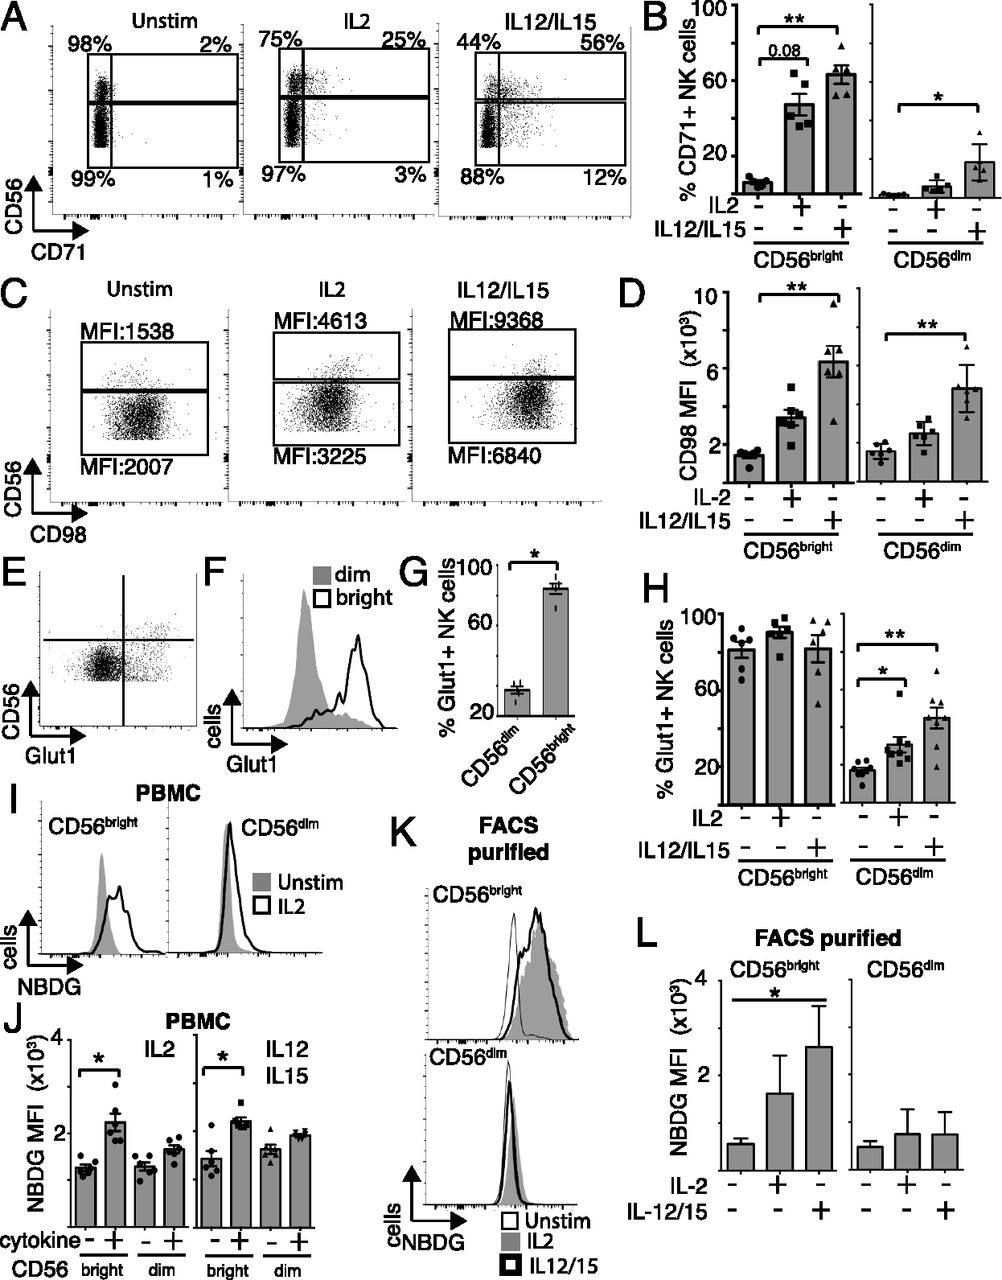 Metabolic Reprogramming Supports IFN-γ Production by CD56bright NK